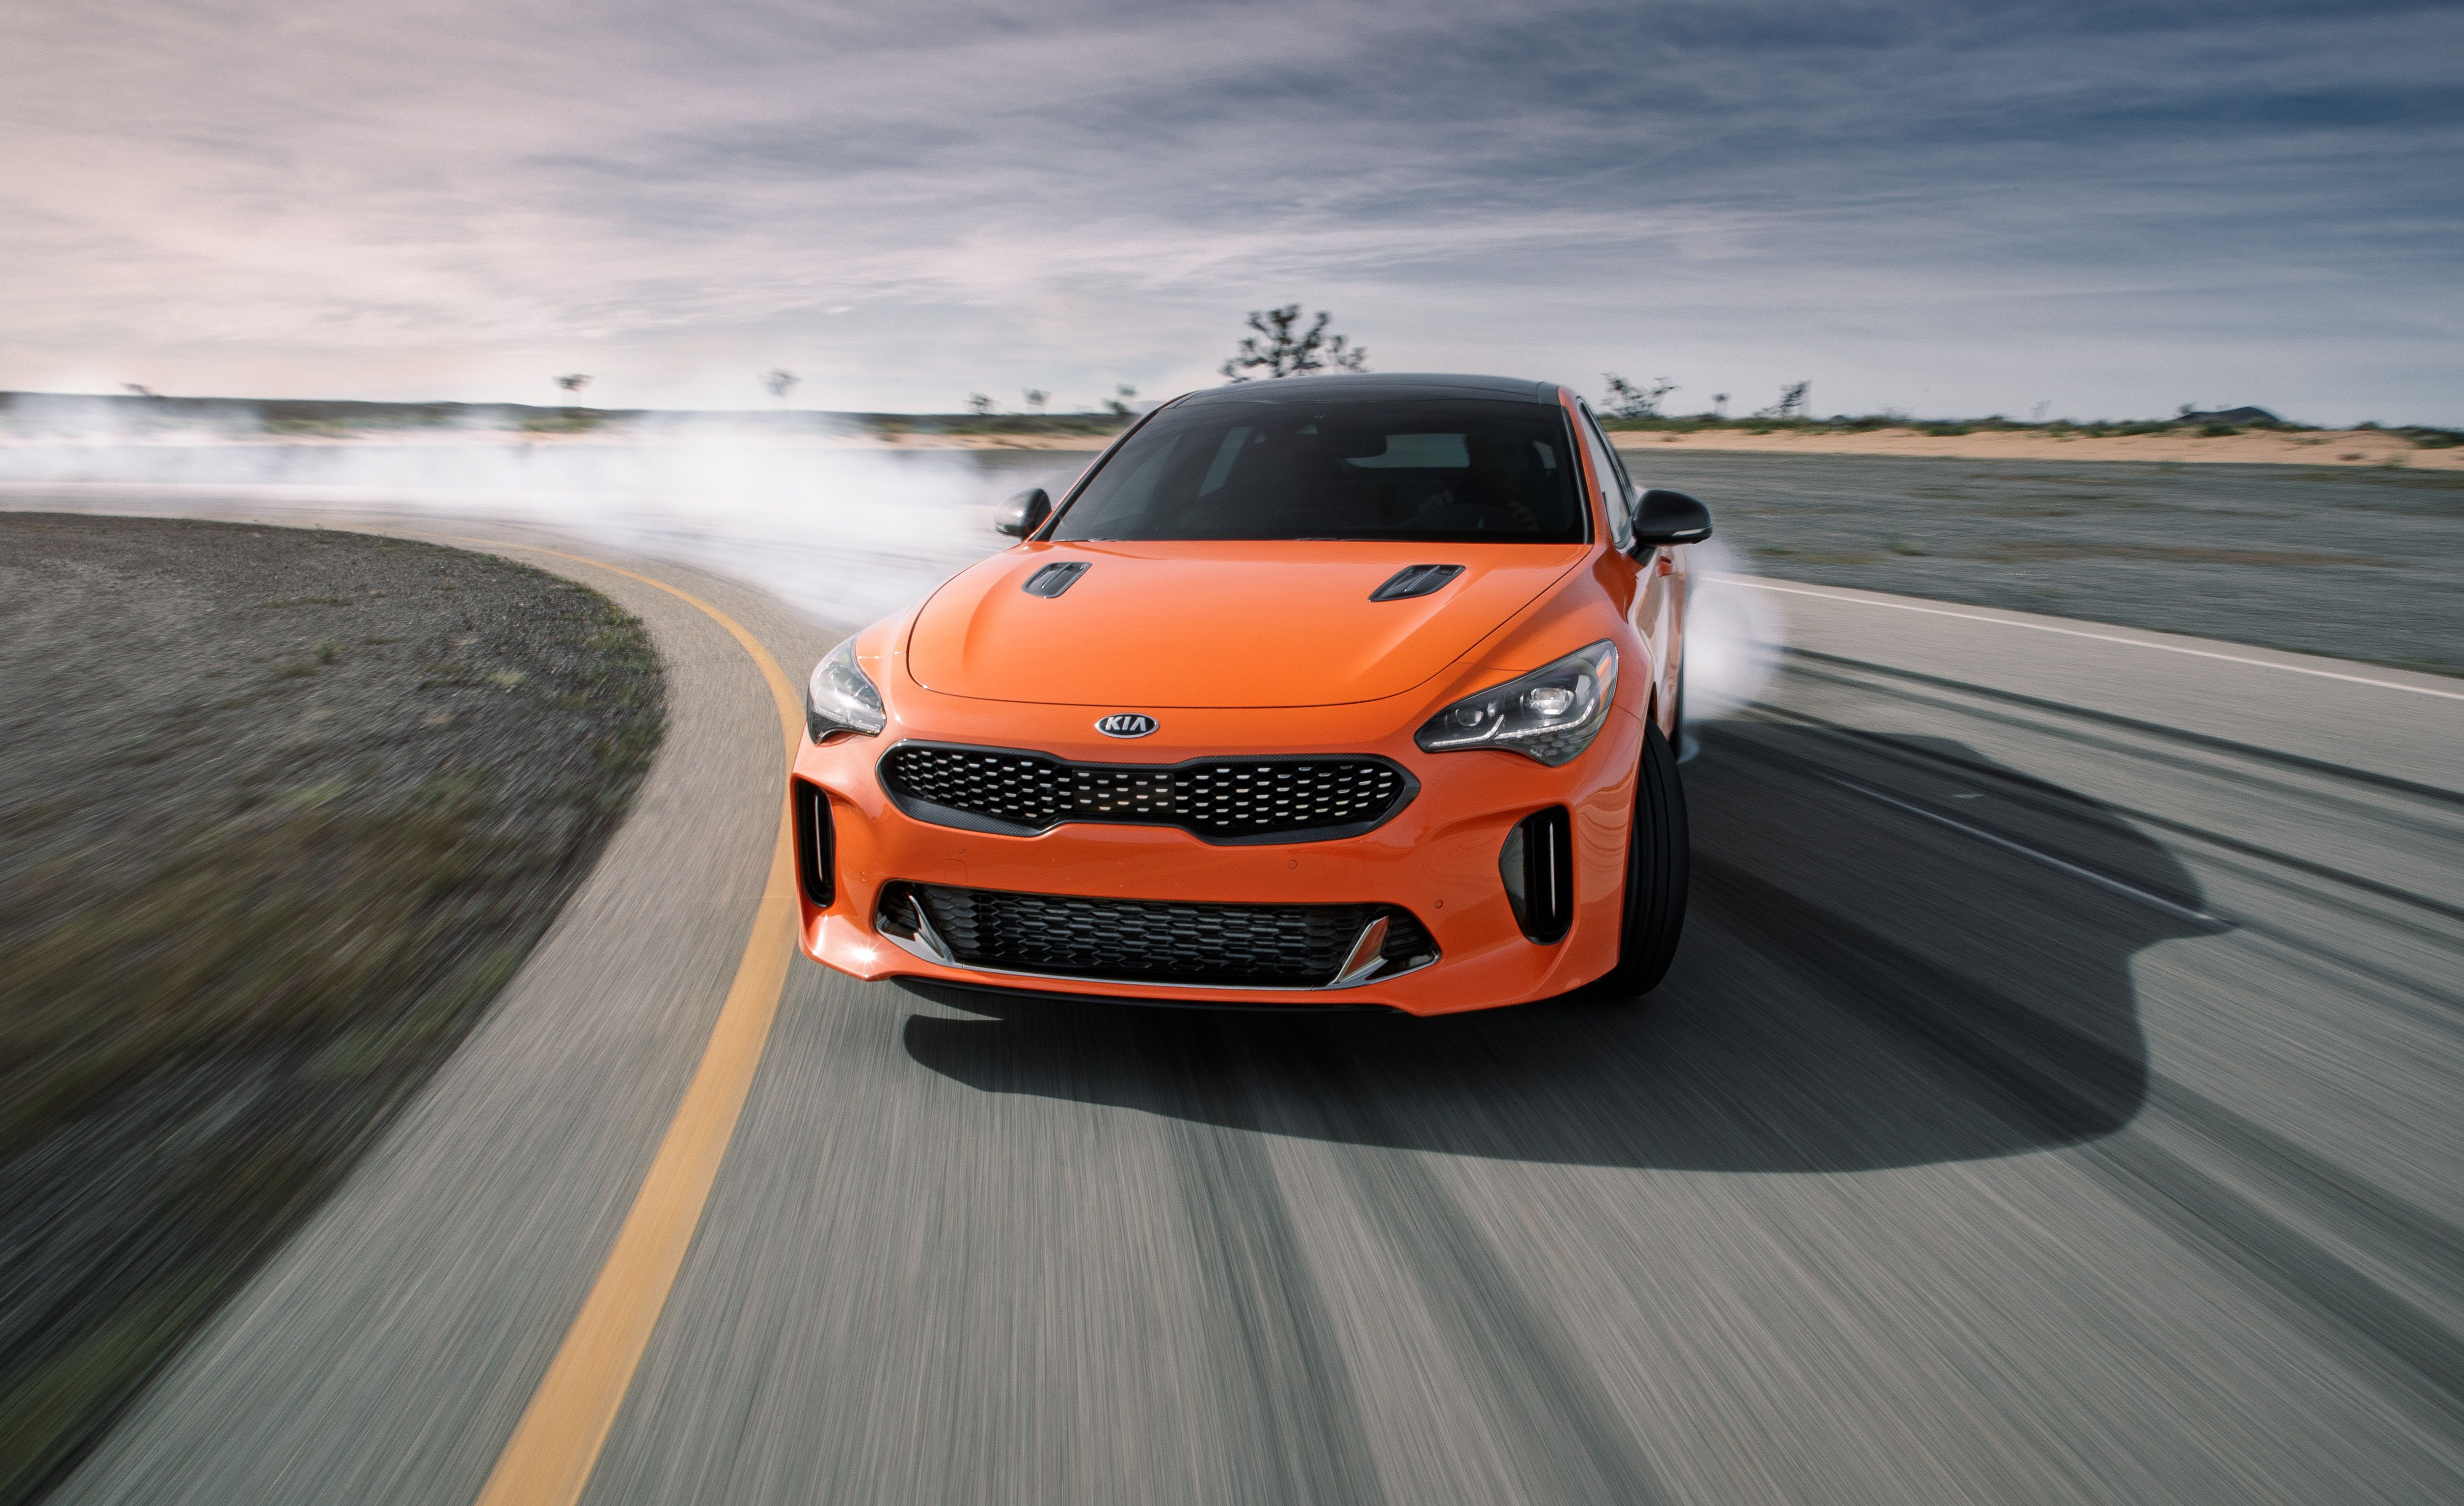 2020 Kia Stinger Gts Is An Orange Special Edition With A Drift Mode Up Its Sleeve Kia Stinger Kia Motors Kia